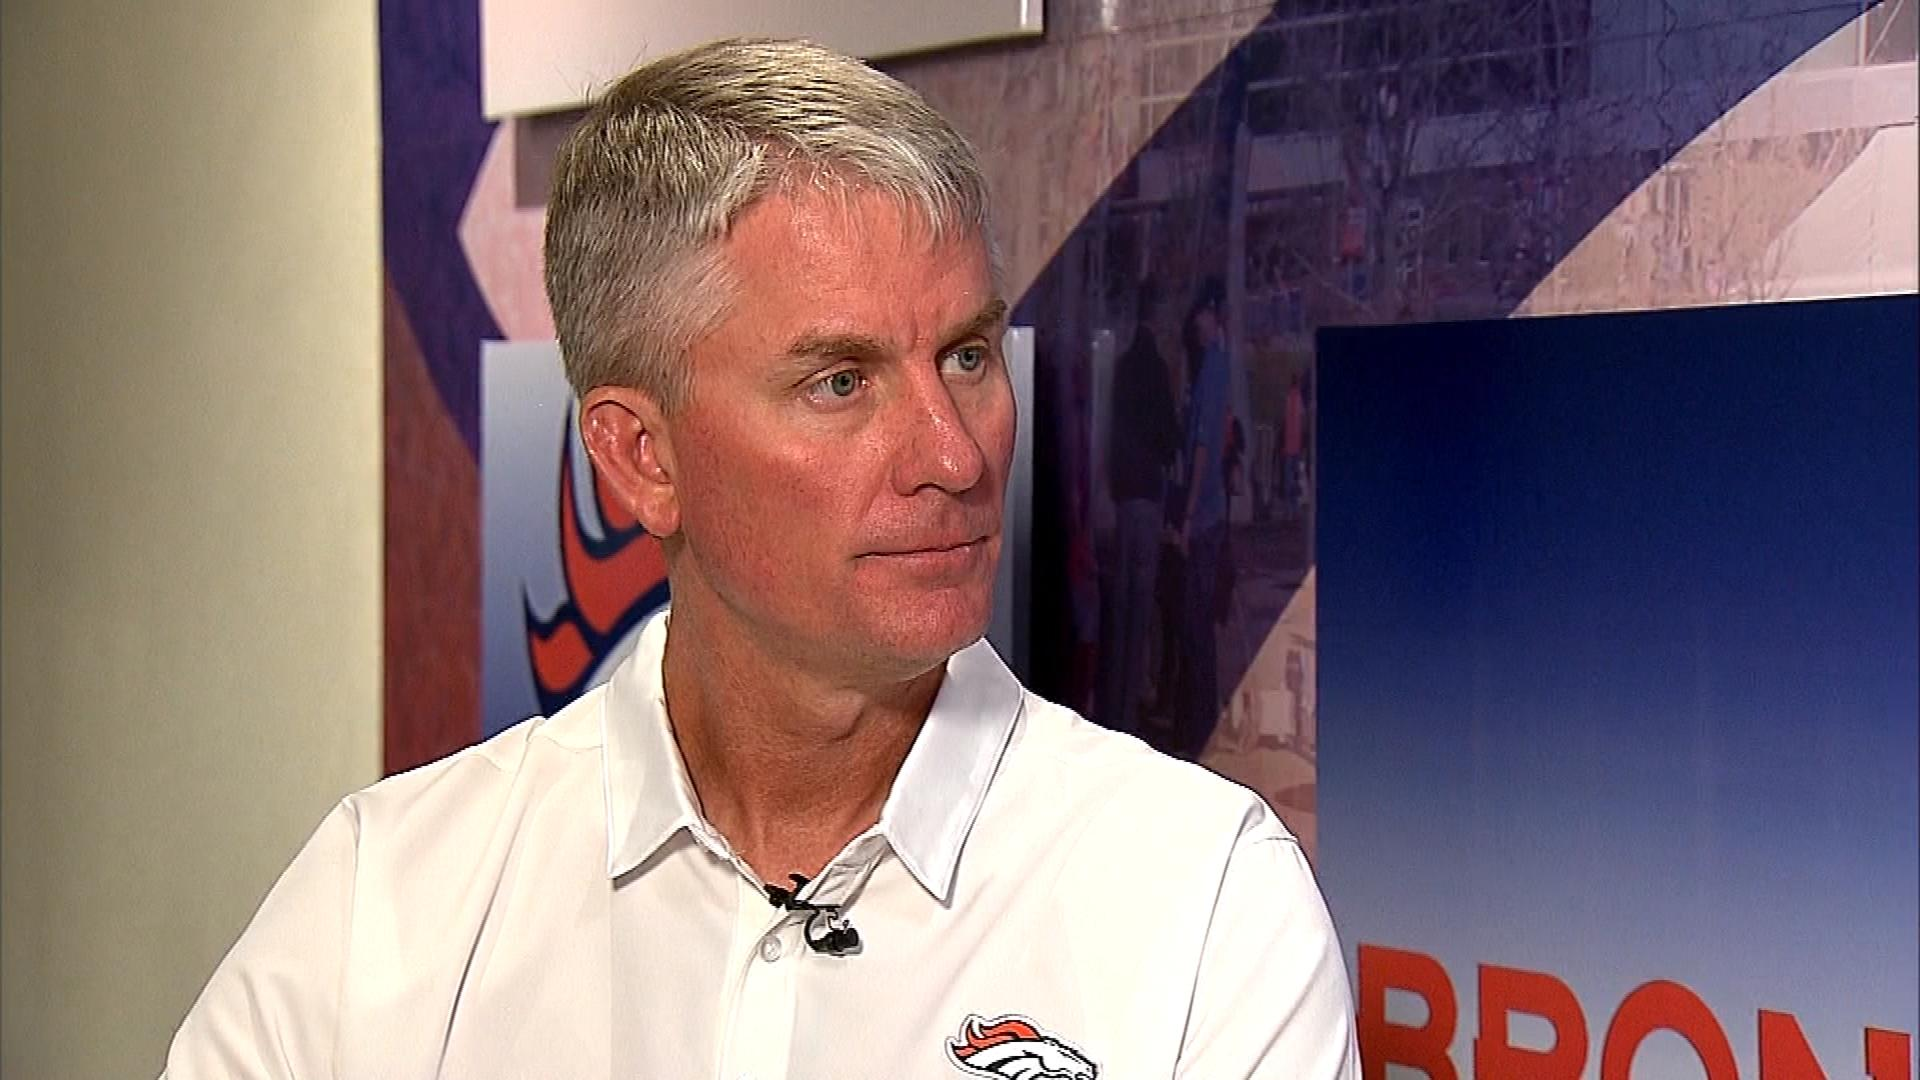 Broncos offensive coordinator Mike McCoy talks with CBS4 on Feb. 7, 2016. (credit: CBS)